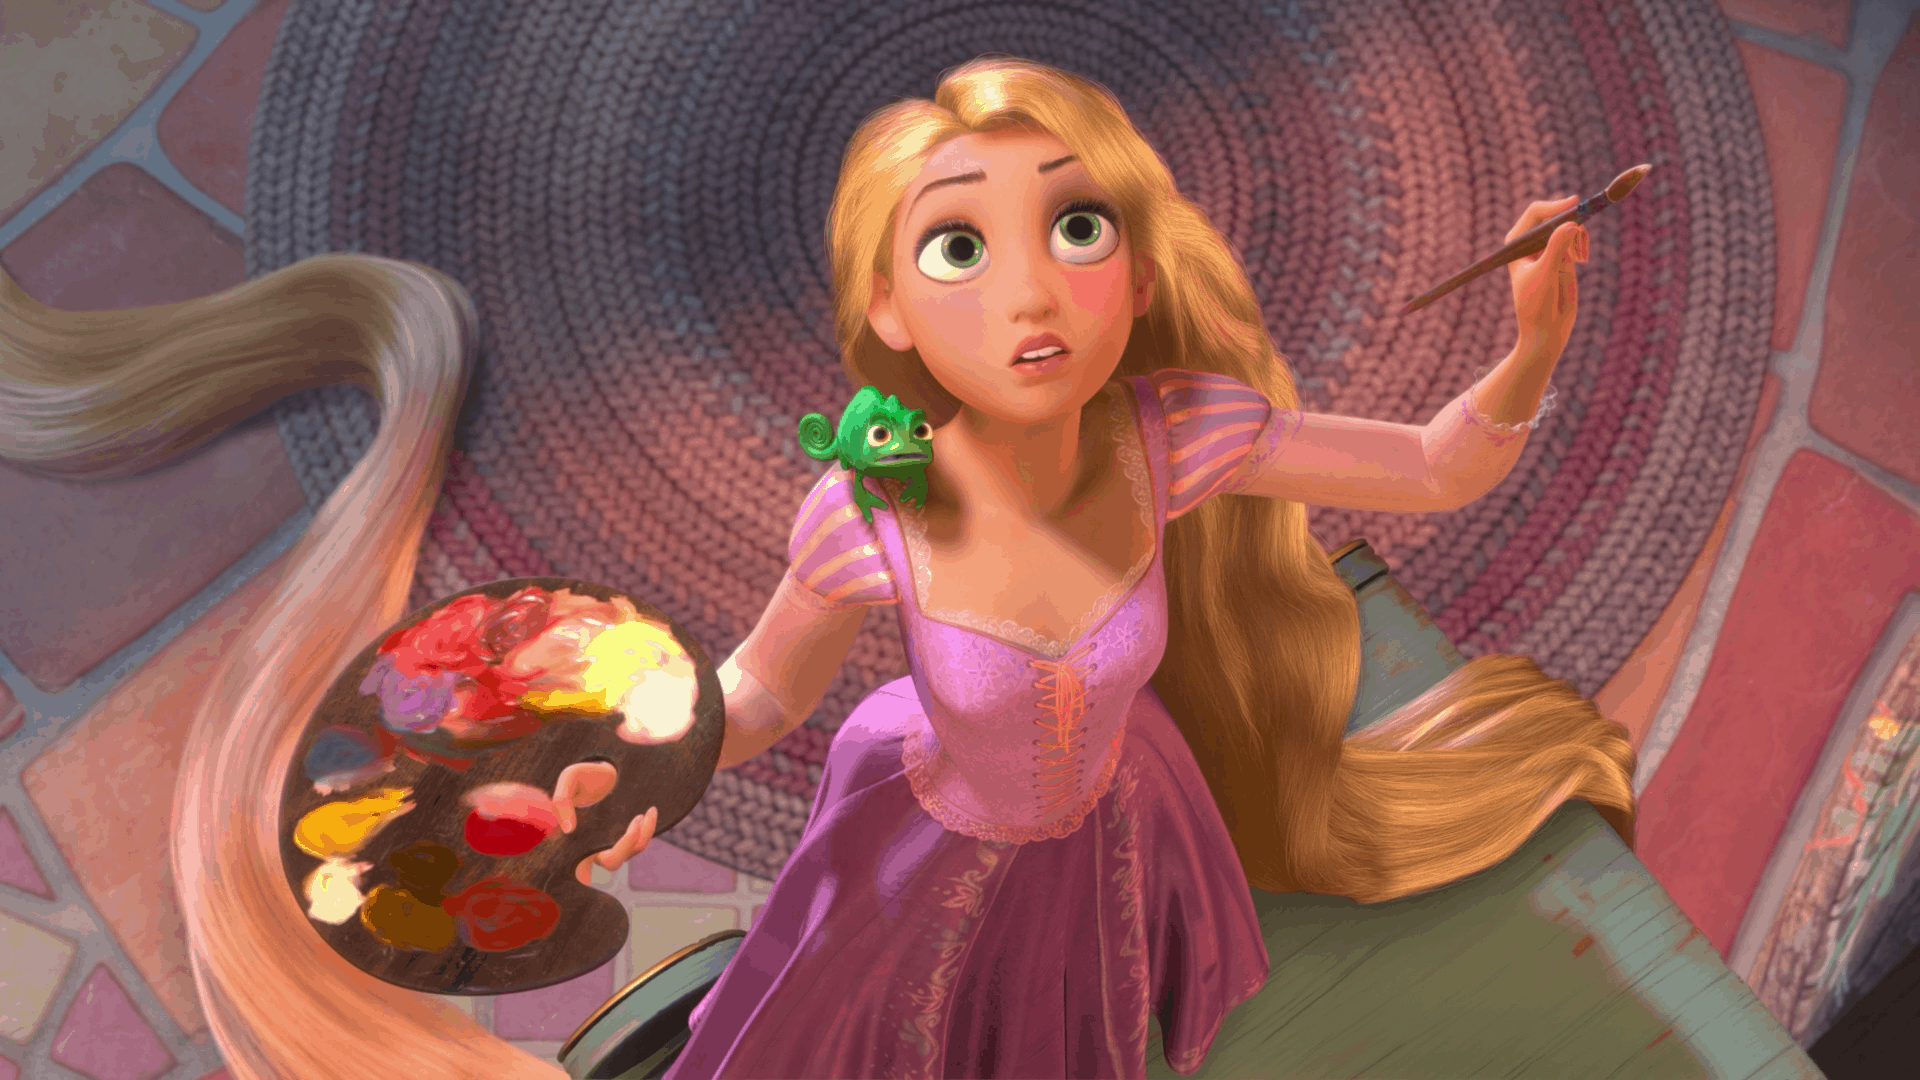 Other Disney Princesses Show Some Redeeming Qualities – belle worst